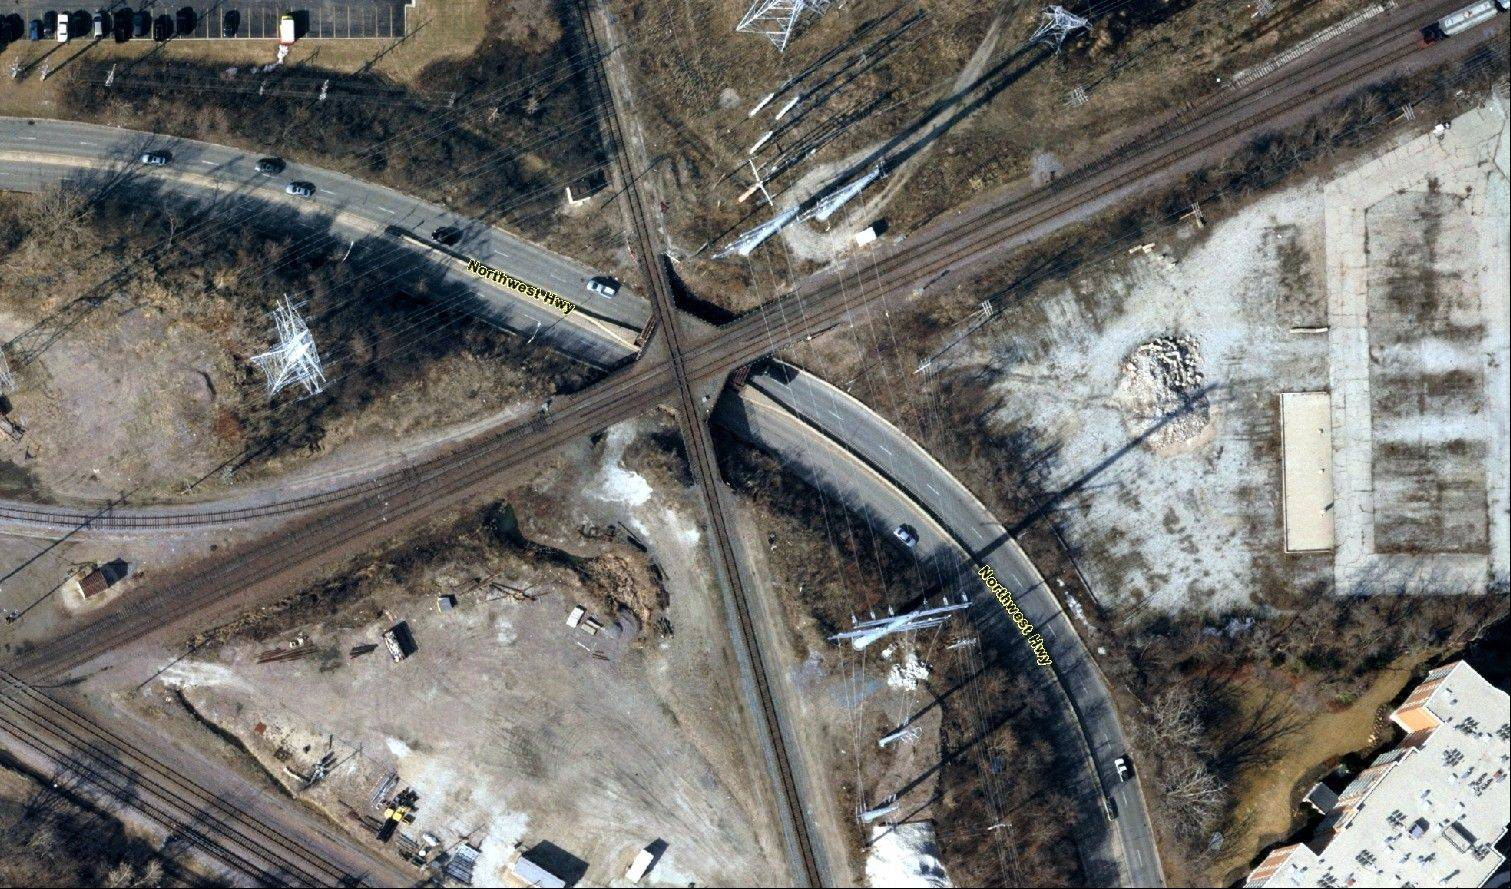 Des Plaines Mayor Marty Moylan said Tuesday he wants an immediate inspection of all railroad bridges that go over roads in the city, including this bridge over Northwest Highway, about a mile west of Graceland Avenue. Moylan's request is in light of a recent bridge collapse in Glenview that killed two people.